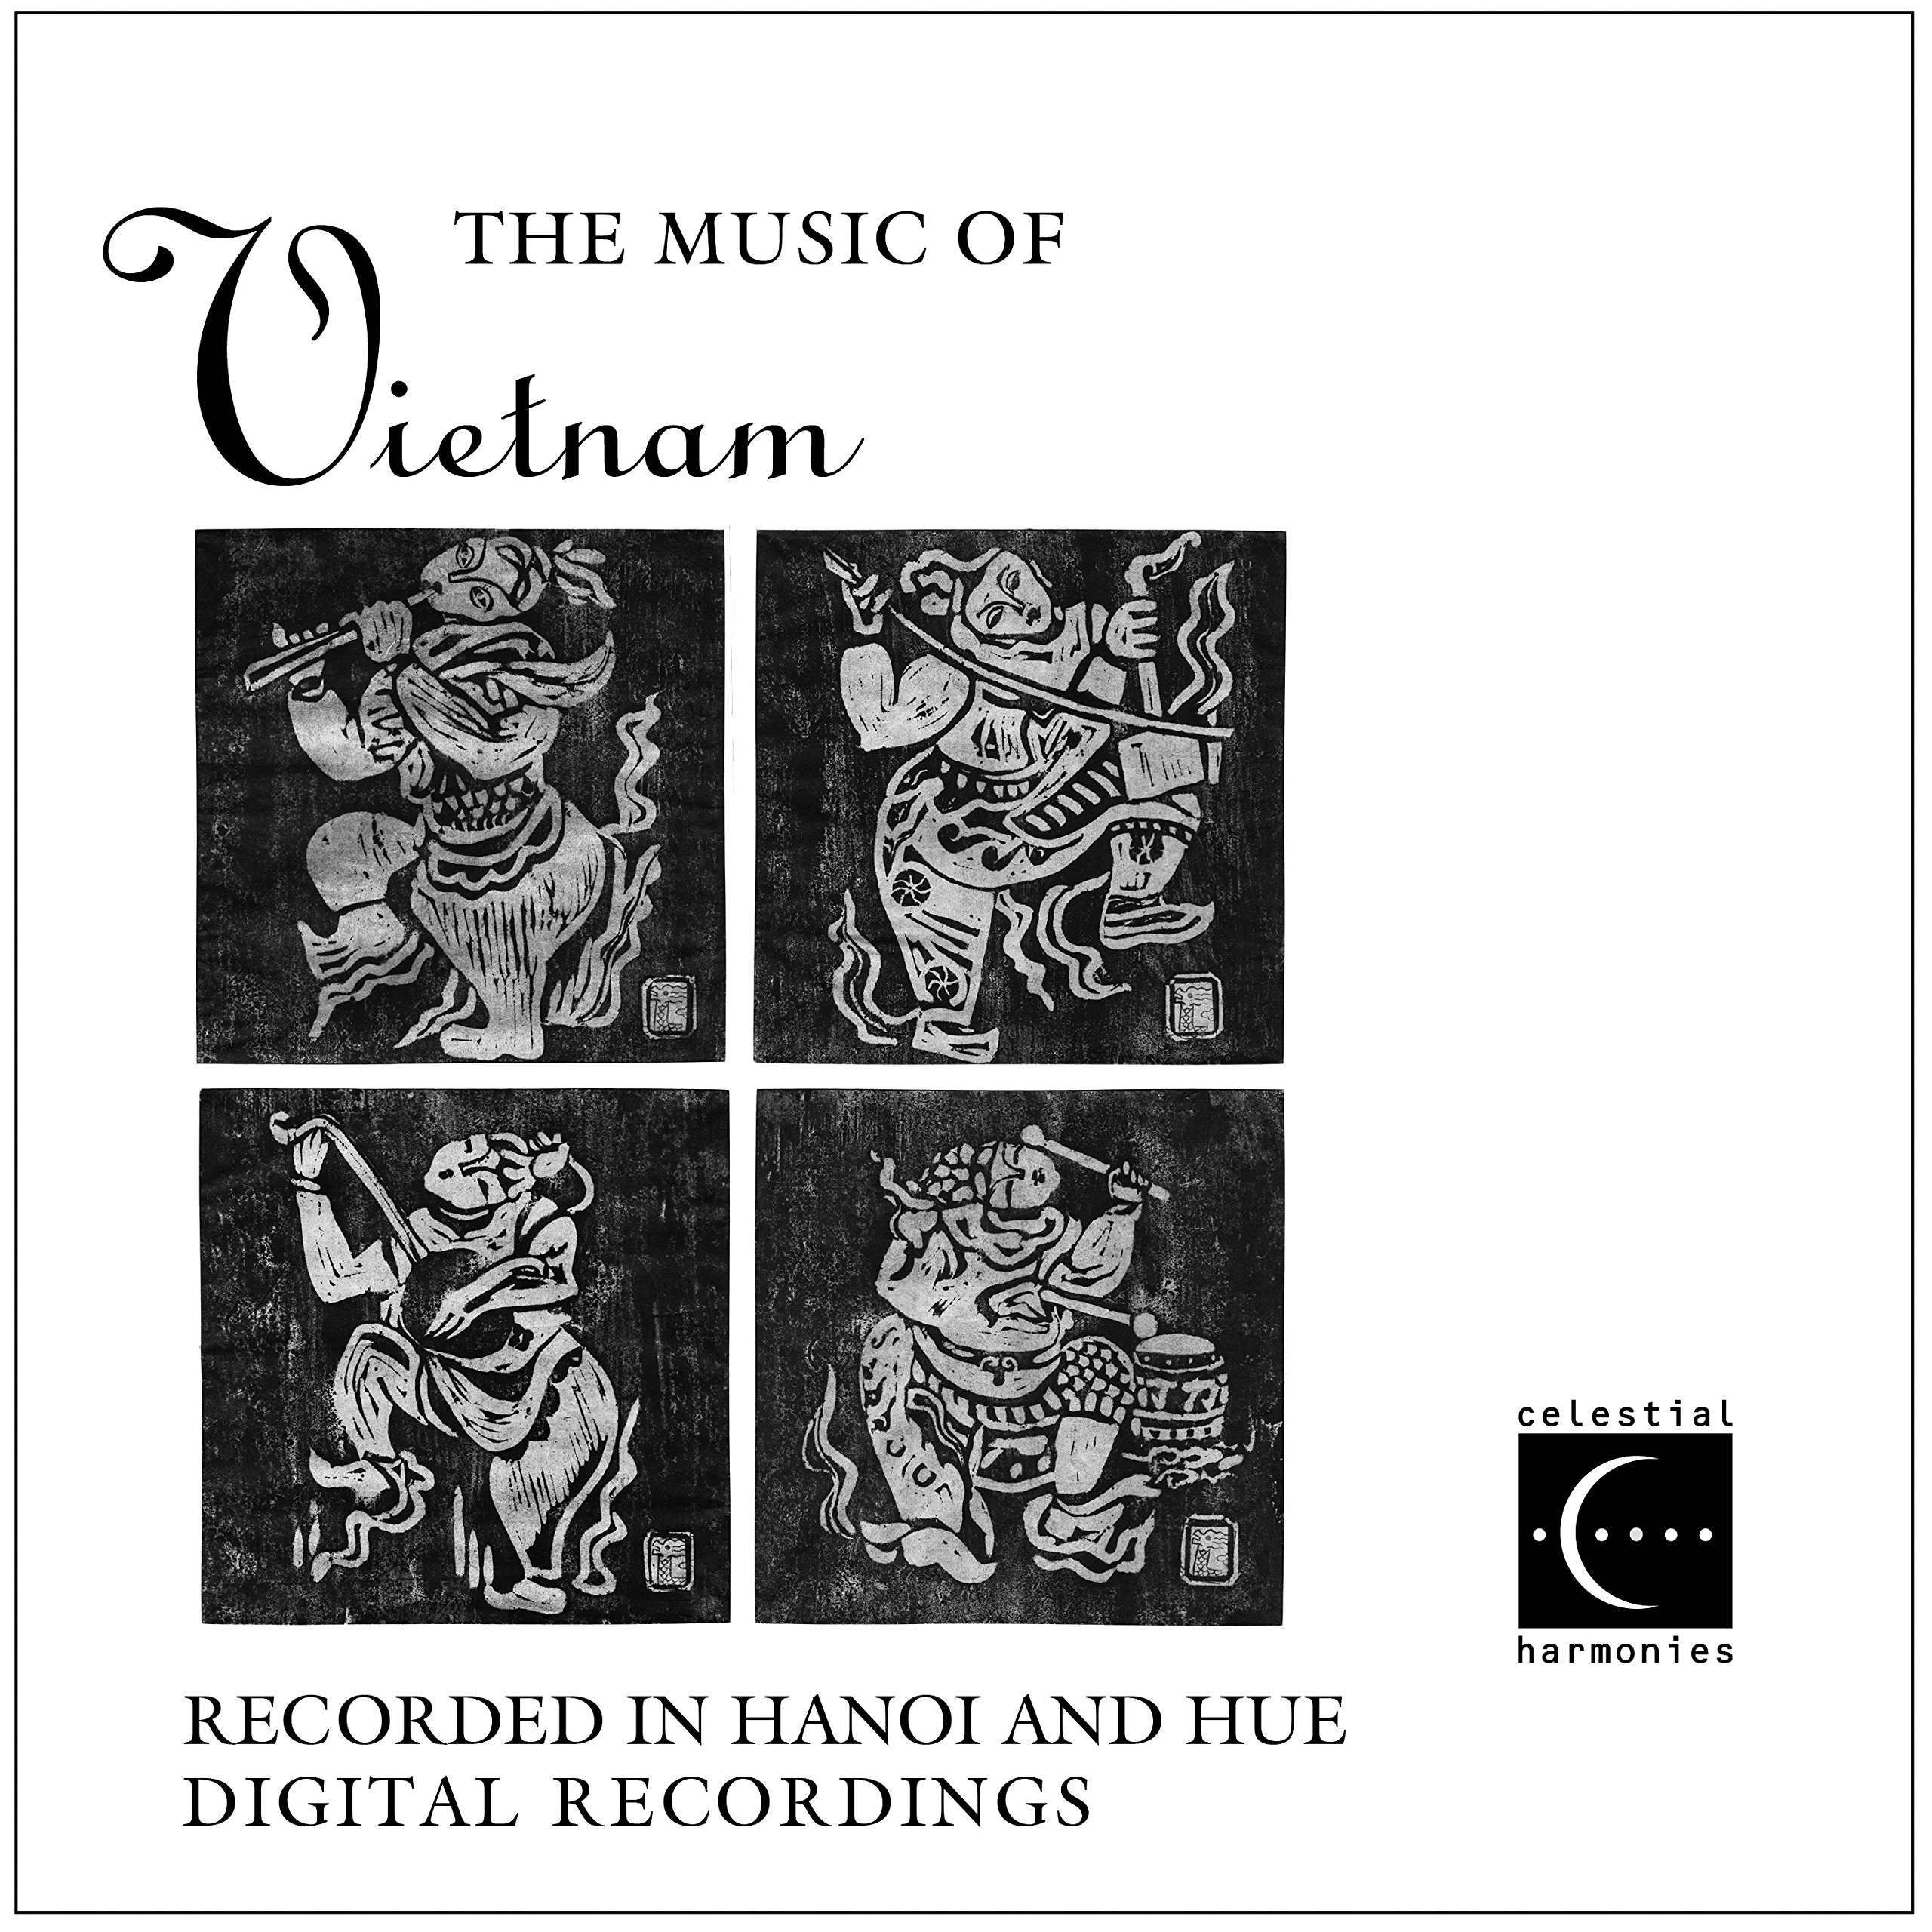 The Music of Vietnam 3 CD Boxed Set by Celestial Harmonies